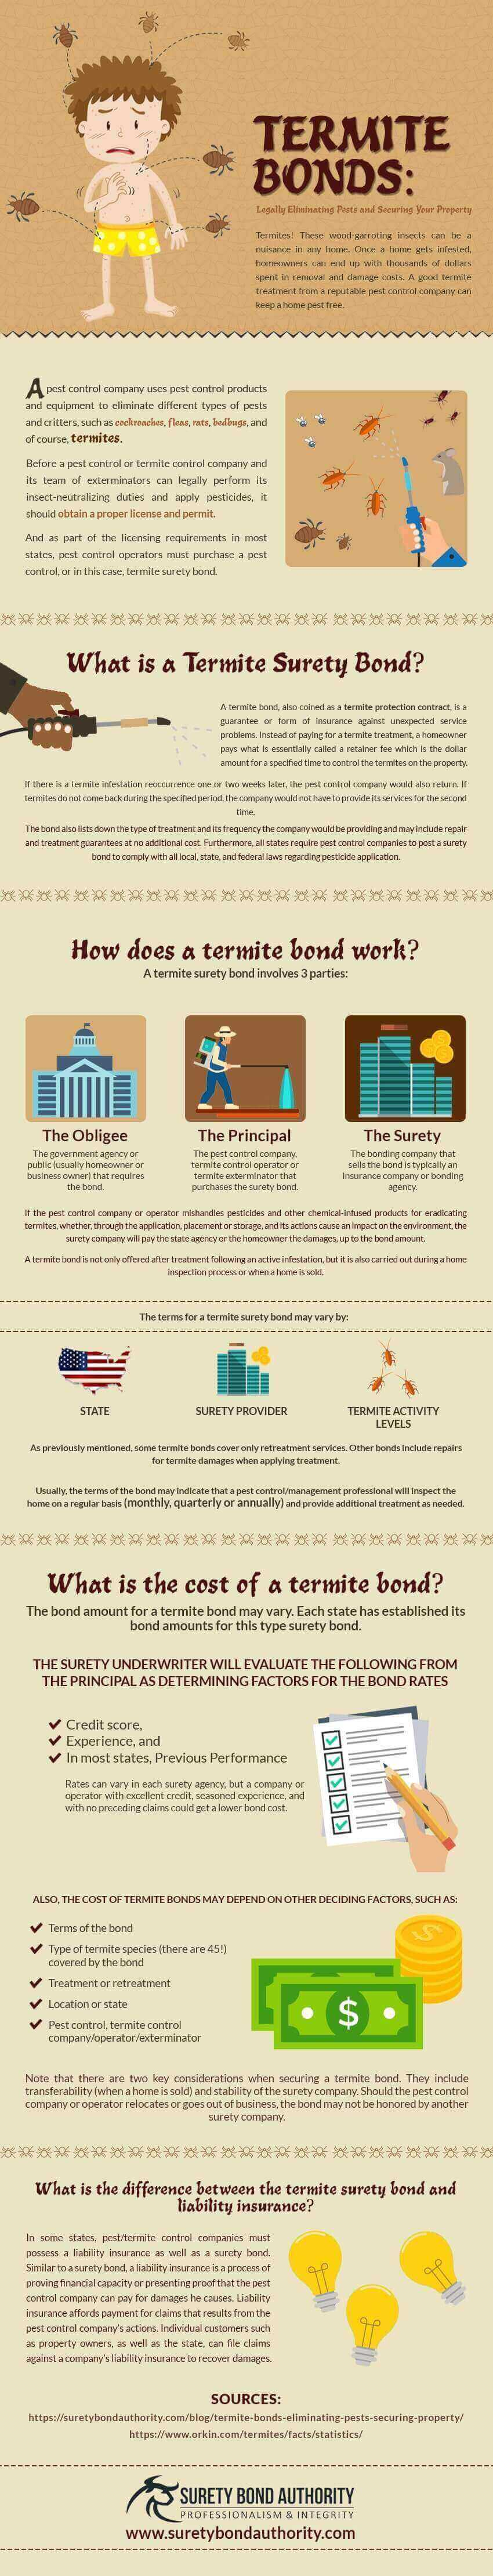 Termite Bonds Infographic